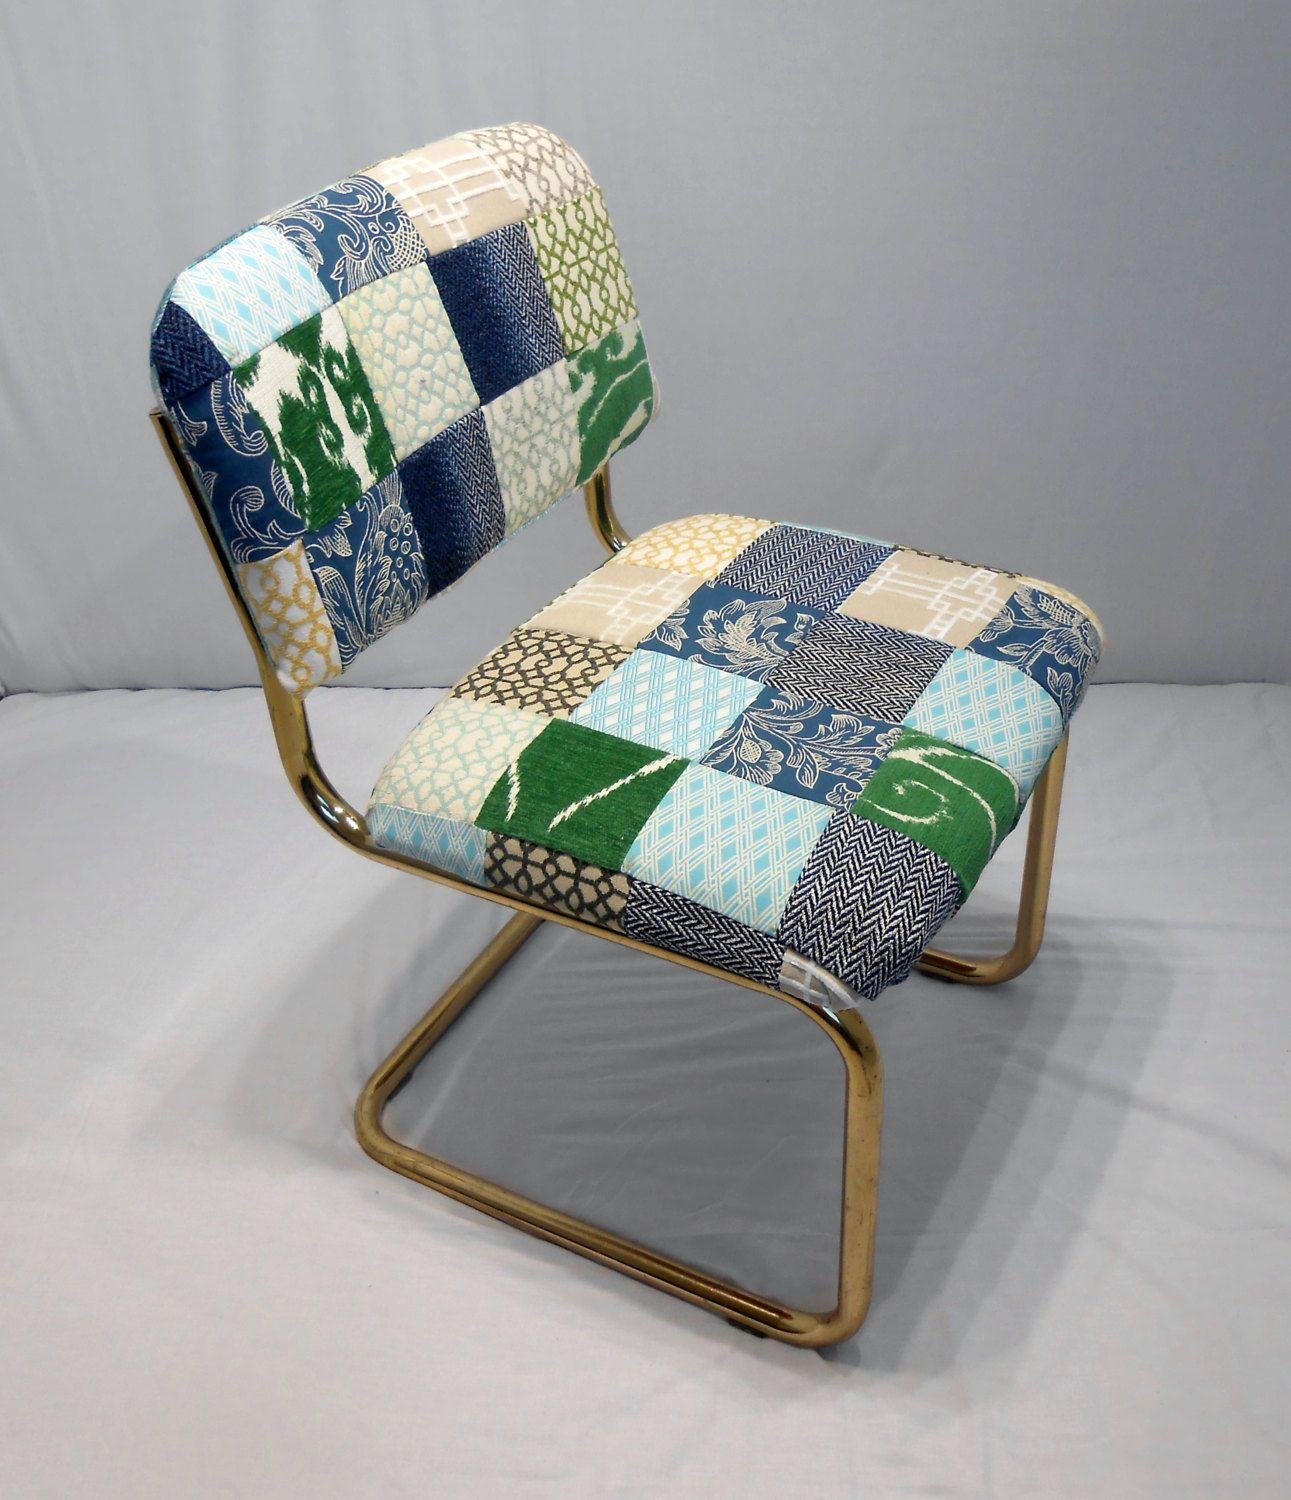 4141 Vintage 1980s Chair Brass Tubular Design Cantilever MCM Danish Modern New Patchwork Upholstery(Etsy のkissmyattvintageより) https://www.etsy.com/jp/listing/273541804/4141-vintage-1980s-chair-brass-tubular